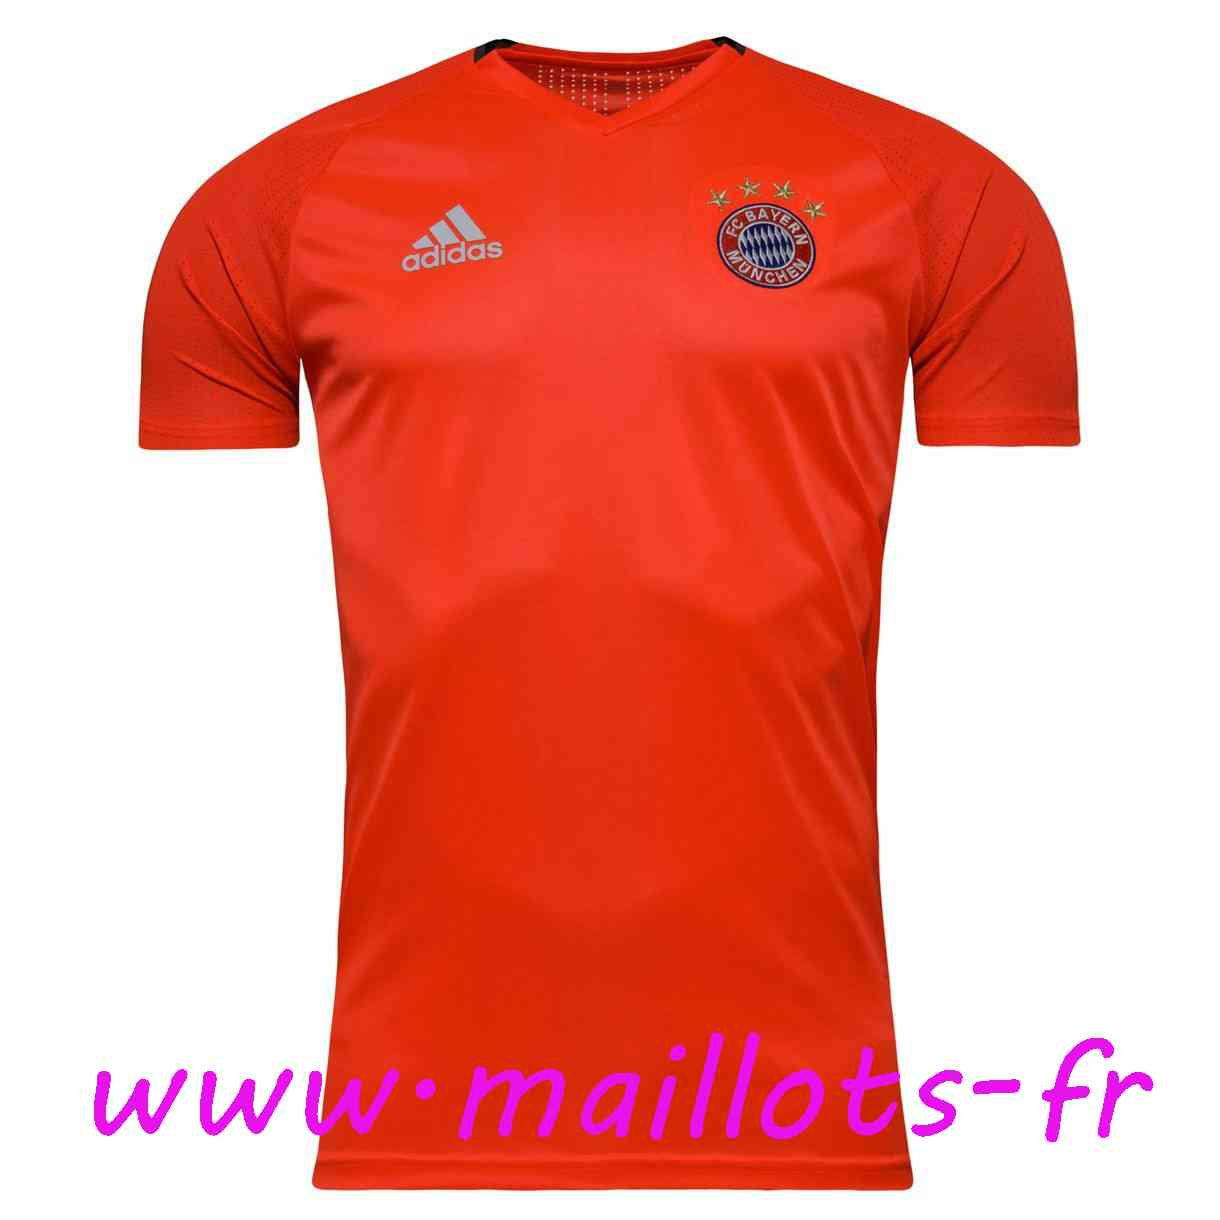 maillots-fr - Training T-Shirt Bayern Munich Rouge 2016 2017